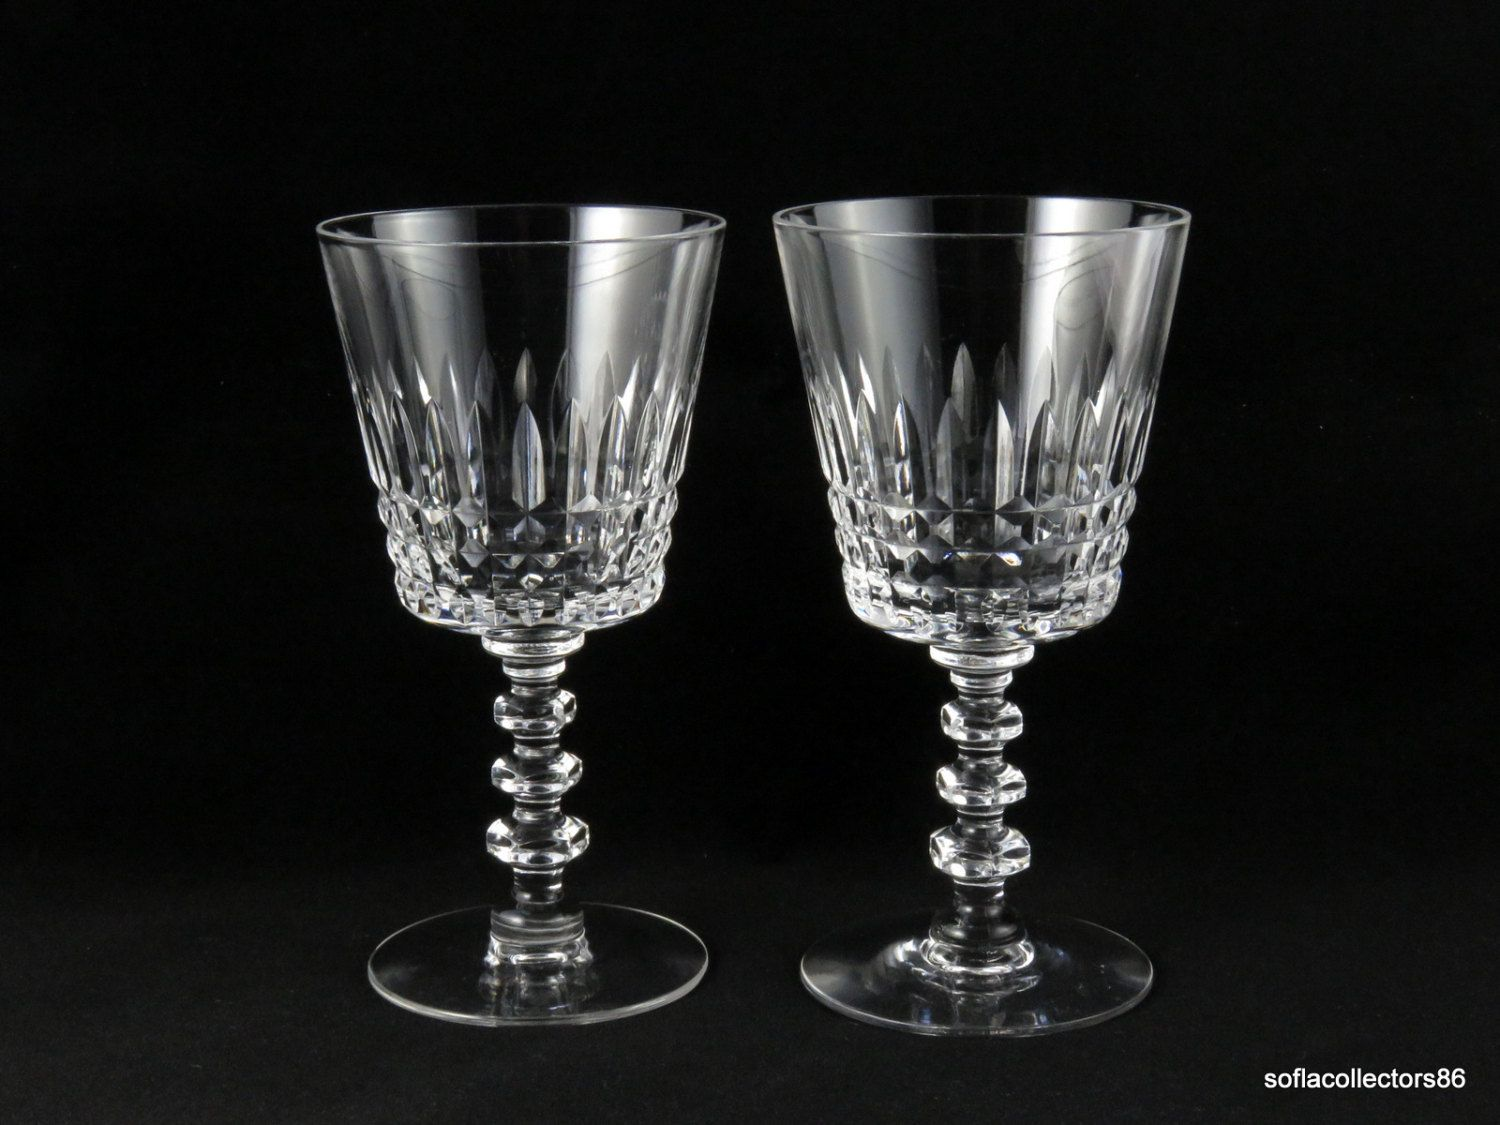 286ab9775a5 Tiffin Glass Williamsburg Pattern Water Glasses - Wine Glasses - Vintage  1950s 1960s Stemware (pair) by soflacollectors86 on Etsy